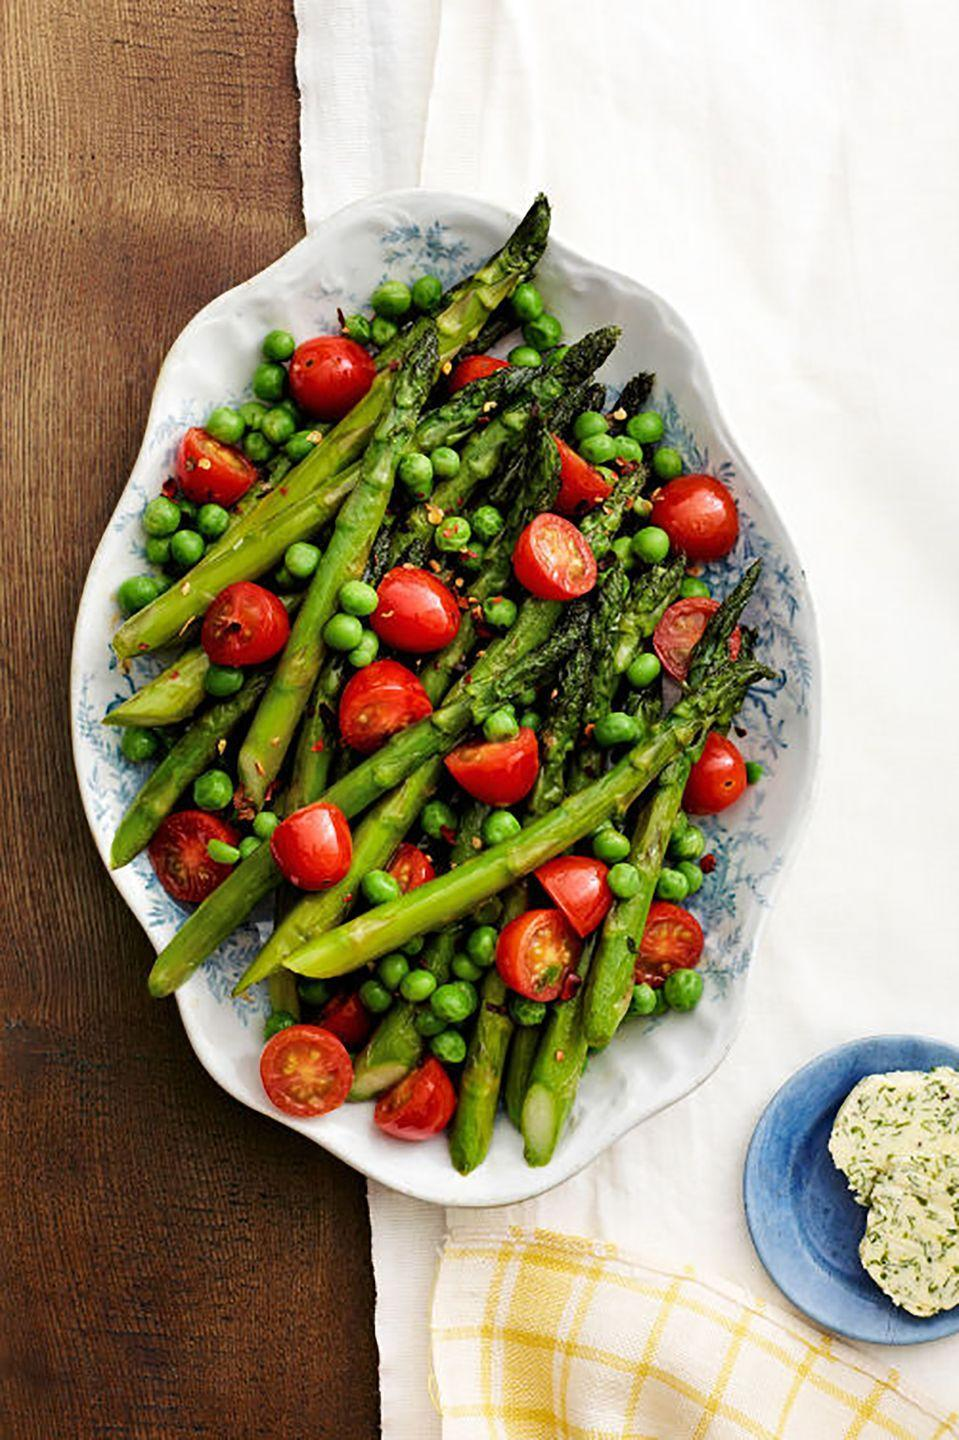 "These garden-fresh vegetables are full of flavor. Sauteed lightly in olive oil and garlic then served with homemade herb butter, they're the perfect addition to any meal. <a href=""https://www.countryliving.com/food-drinks/recipes/a4959/asparagus-peas-tomatoes-herb-butter-recipe-clx0414/"" rel=""nofollow noopener"" target=""_blank"" data-ylk=""slk:Get the recipe."" class=""link rapid-noclick-resp""><strong>Get the recipe.</strong></a>"